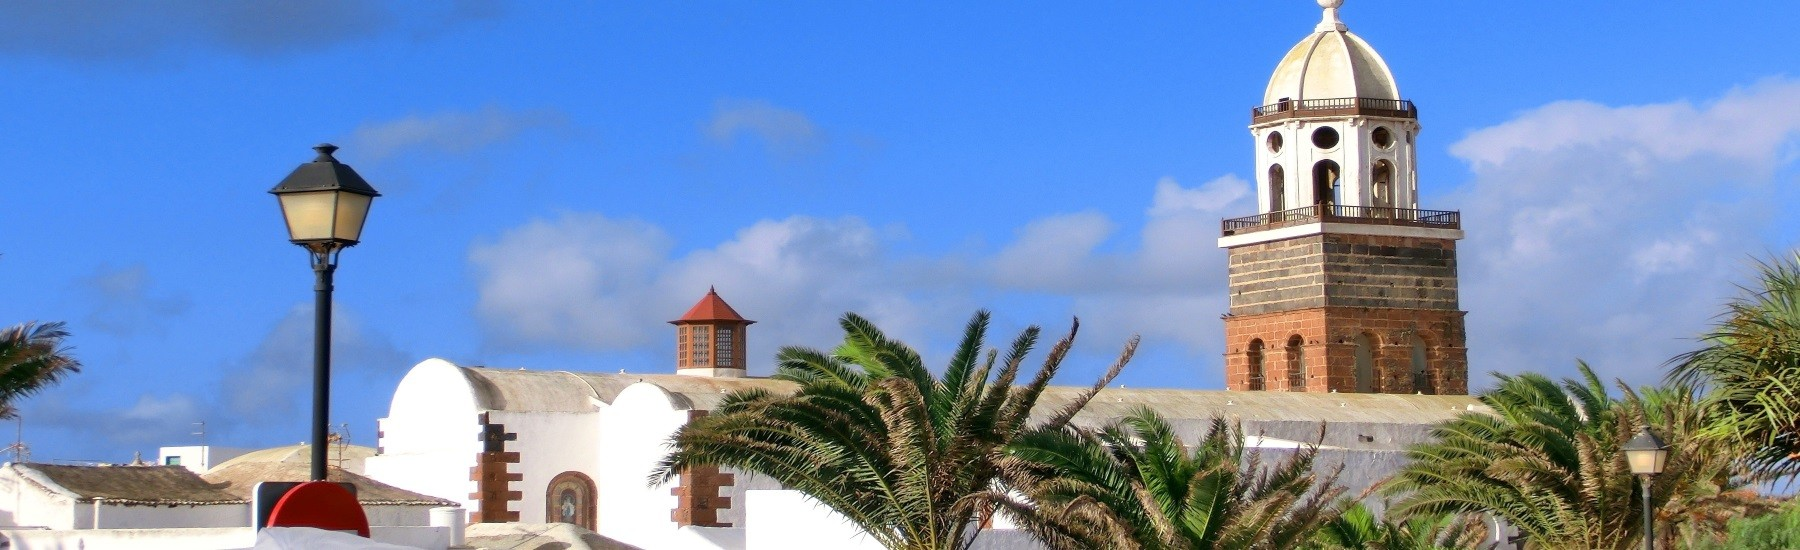 sightseeing in Lanzarote - cathedral